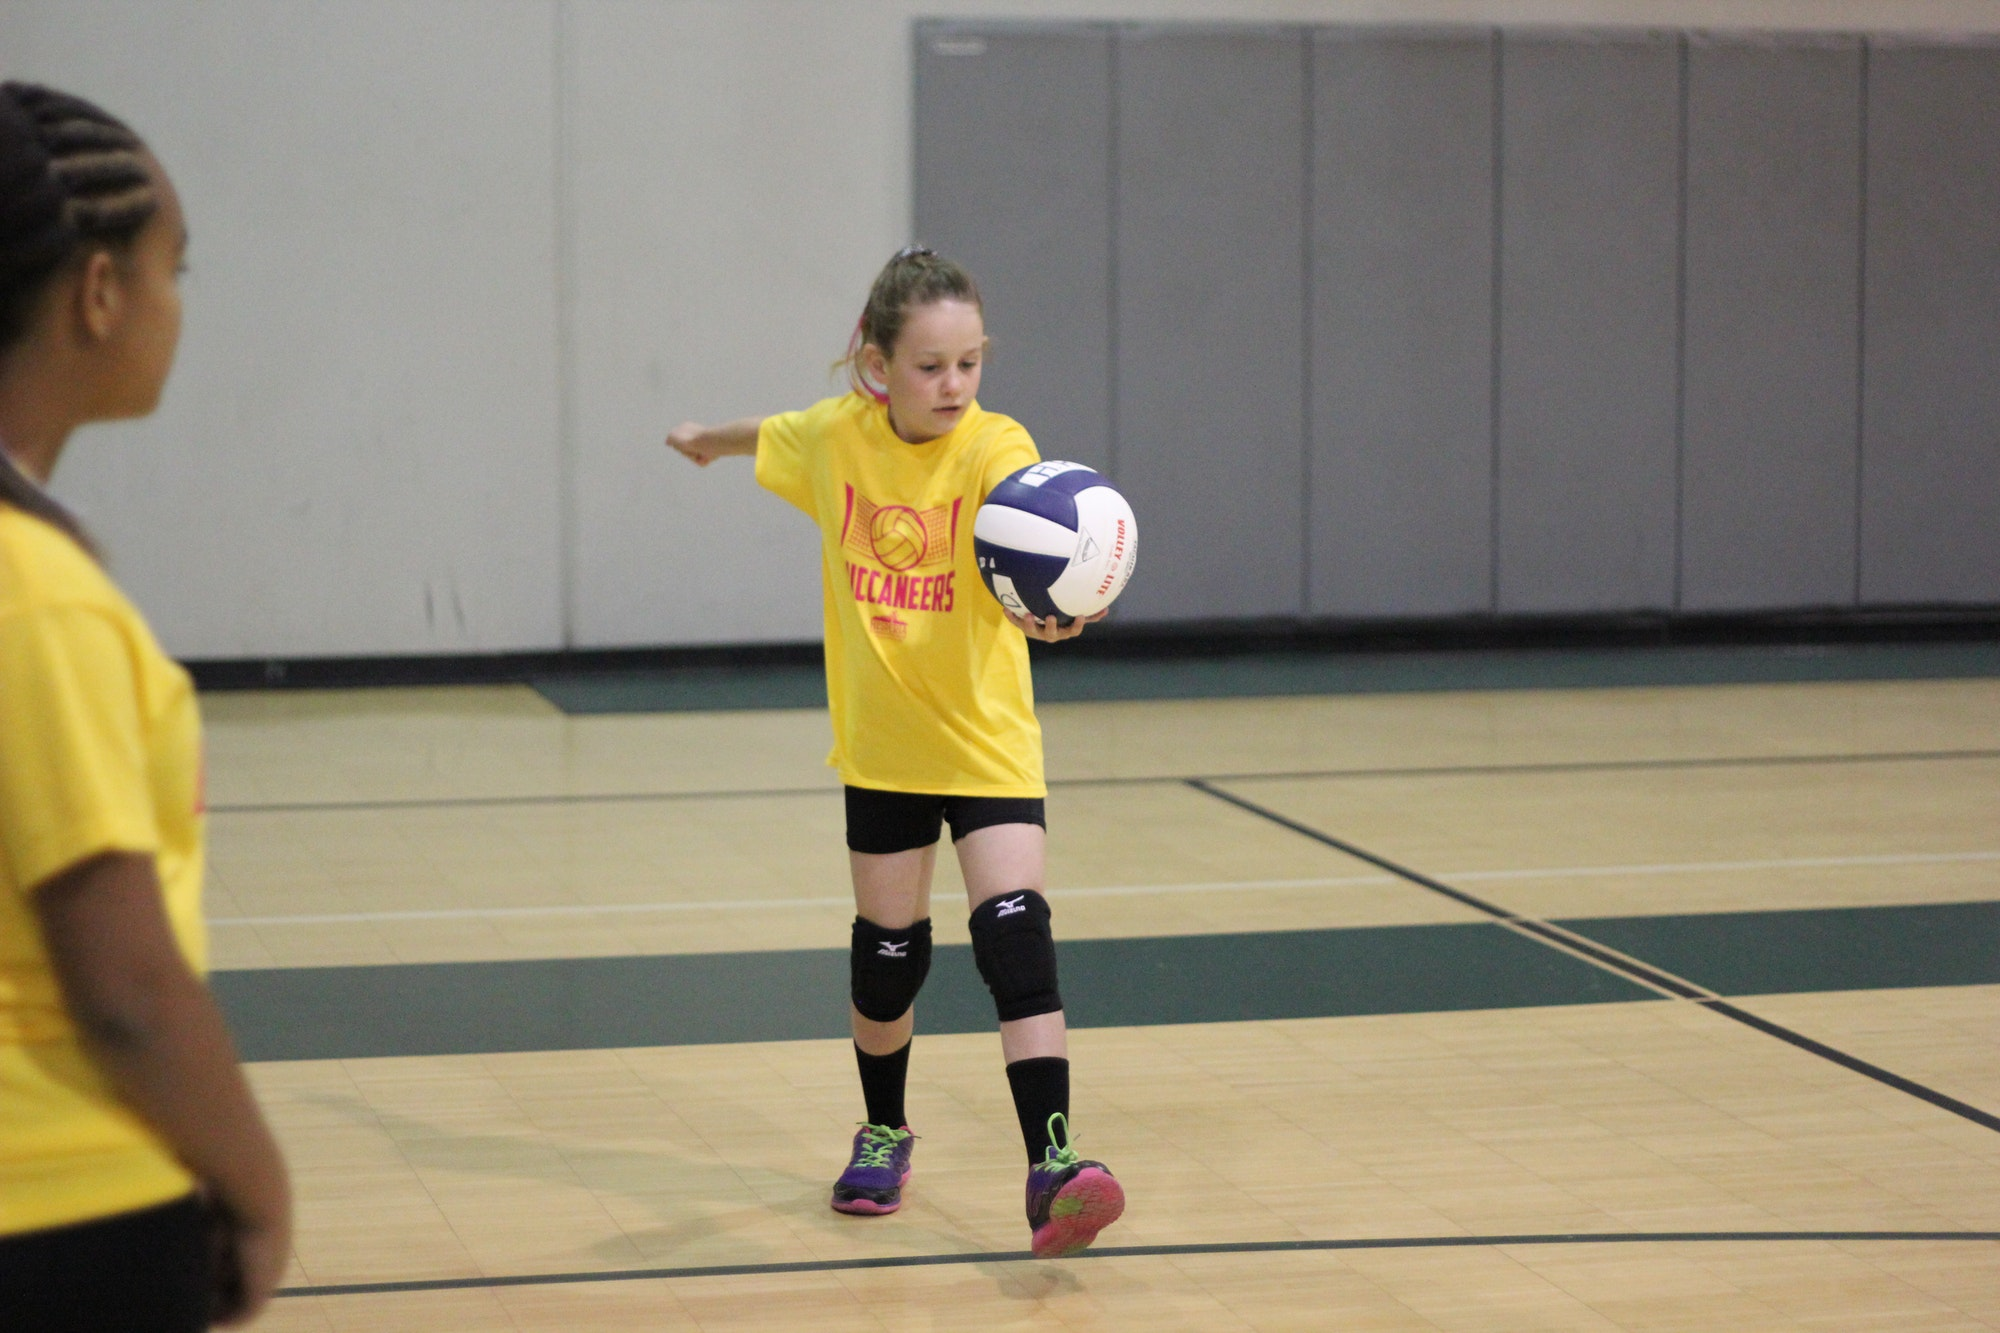 Little girl about to hit a volleyball